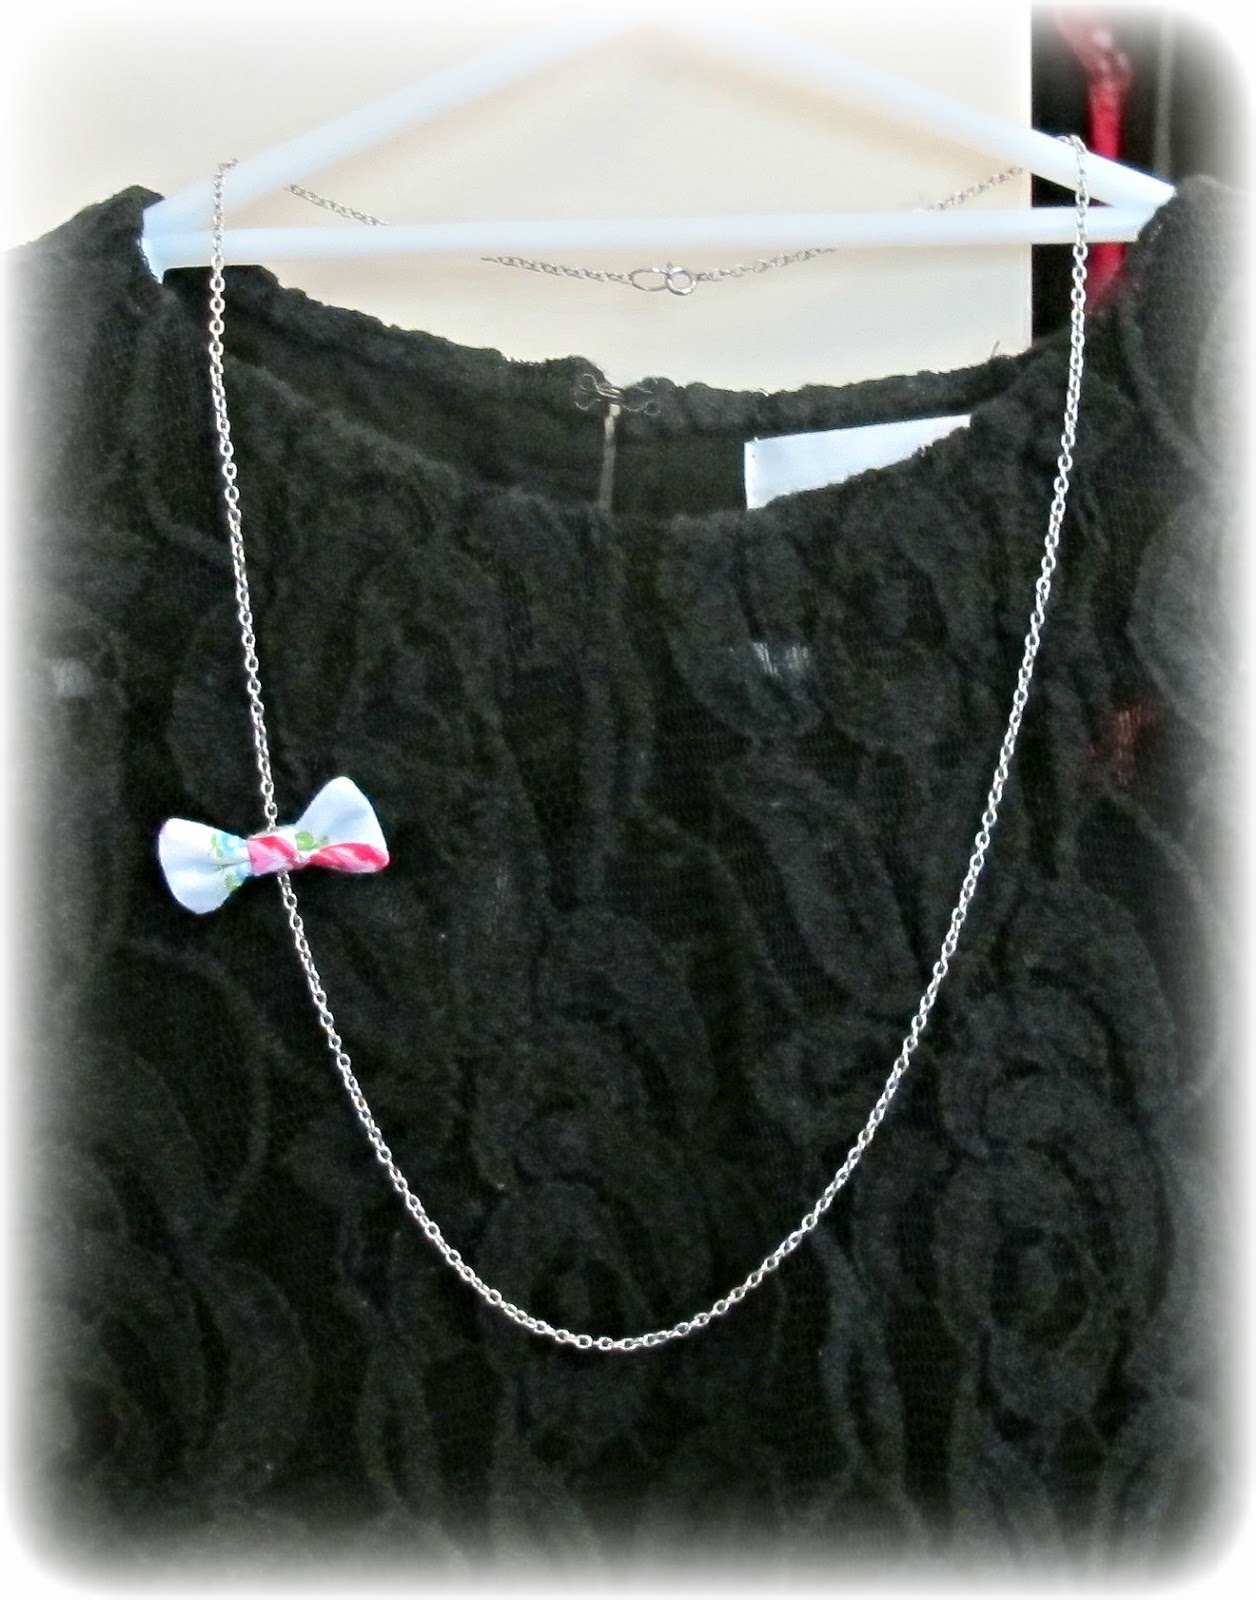 image asymmetrical fabric bow necklace two cheeky monkeys